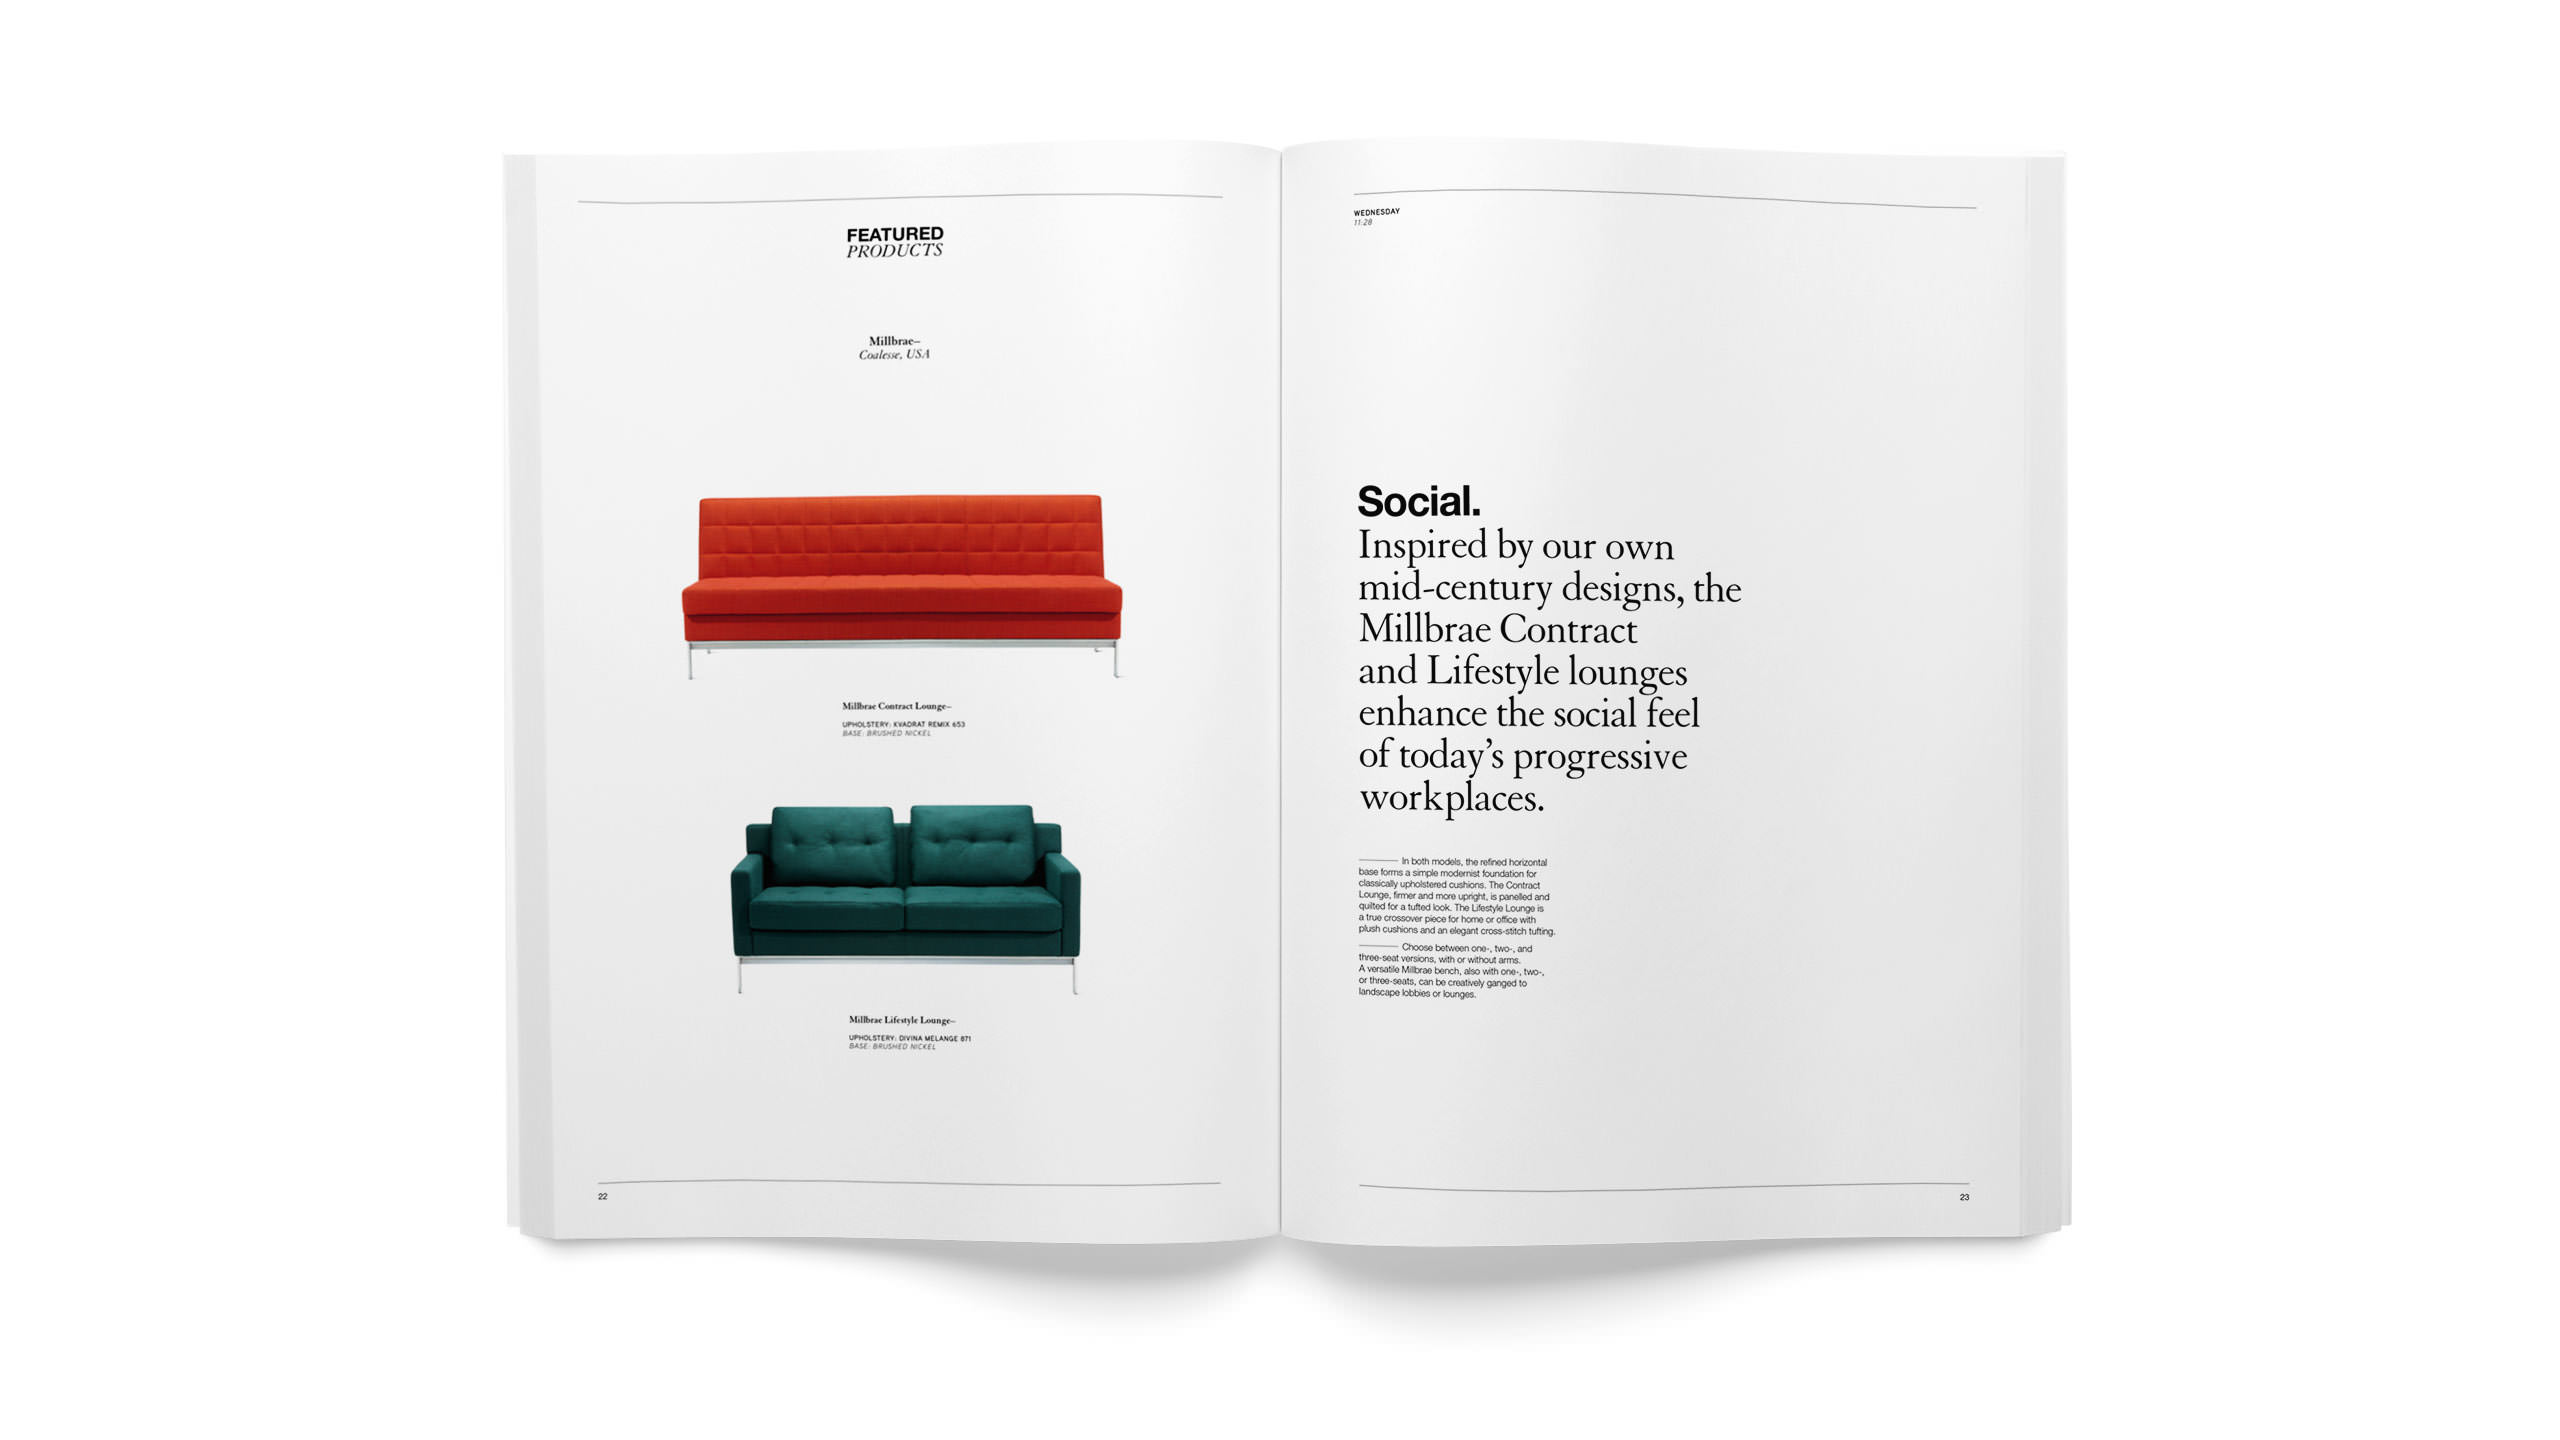 Coalesse Brand Refresh of Collateral Portfolio with featured products spread